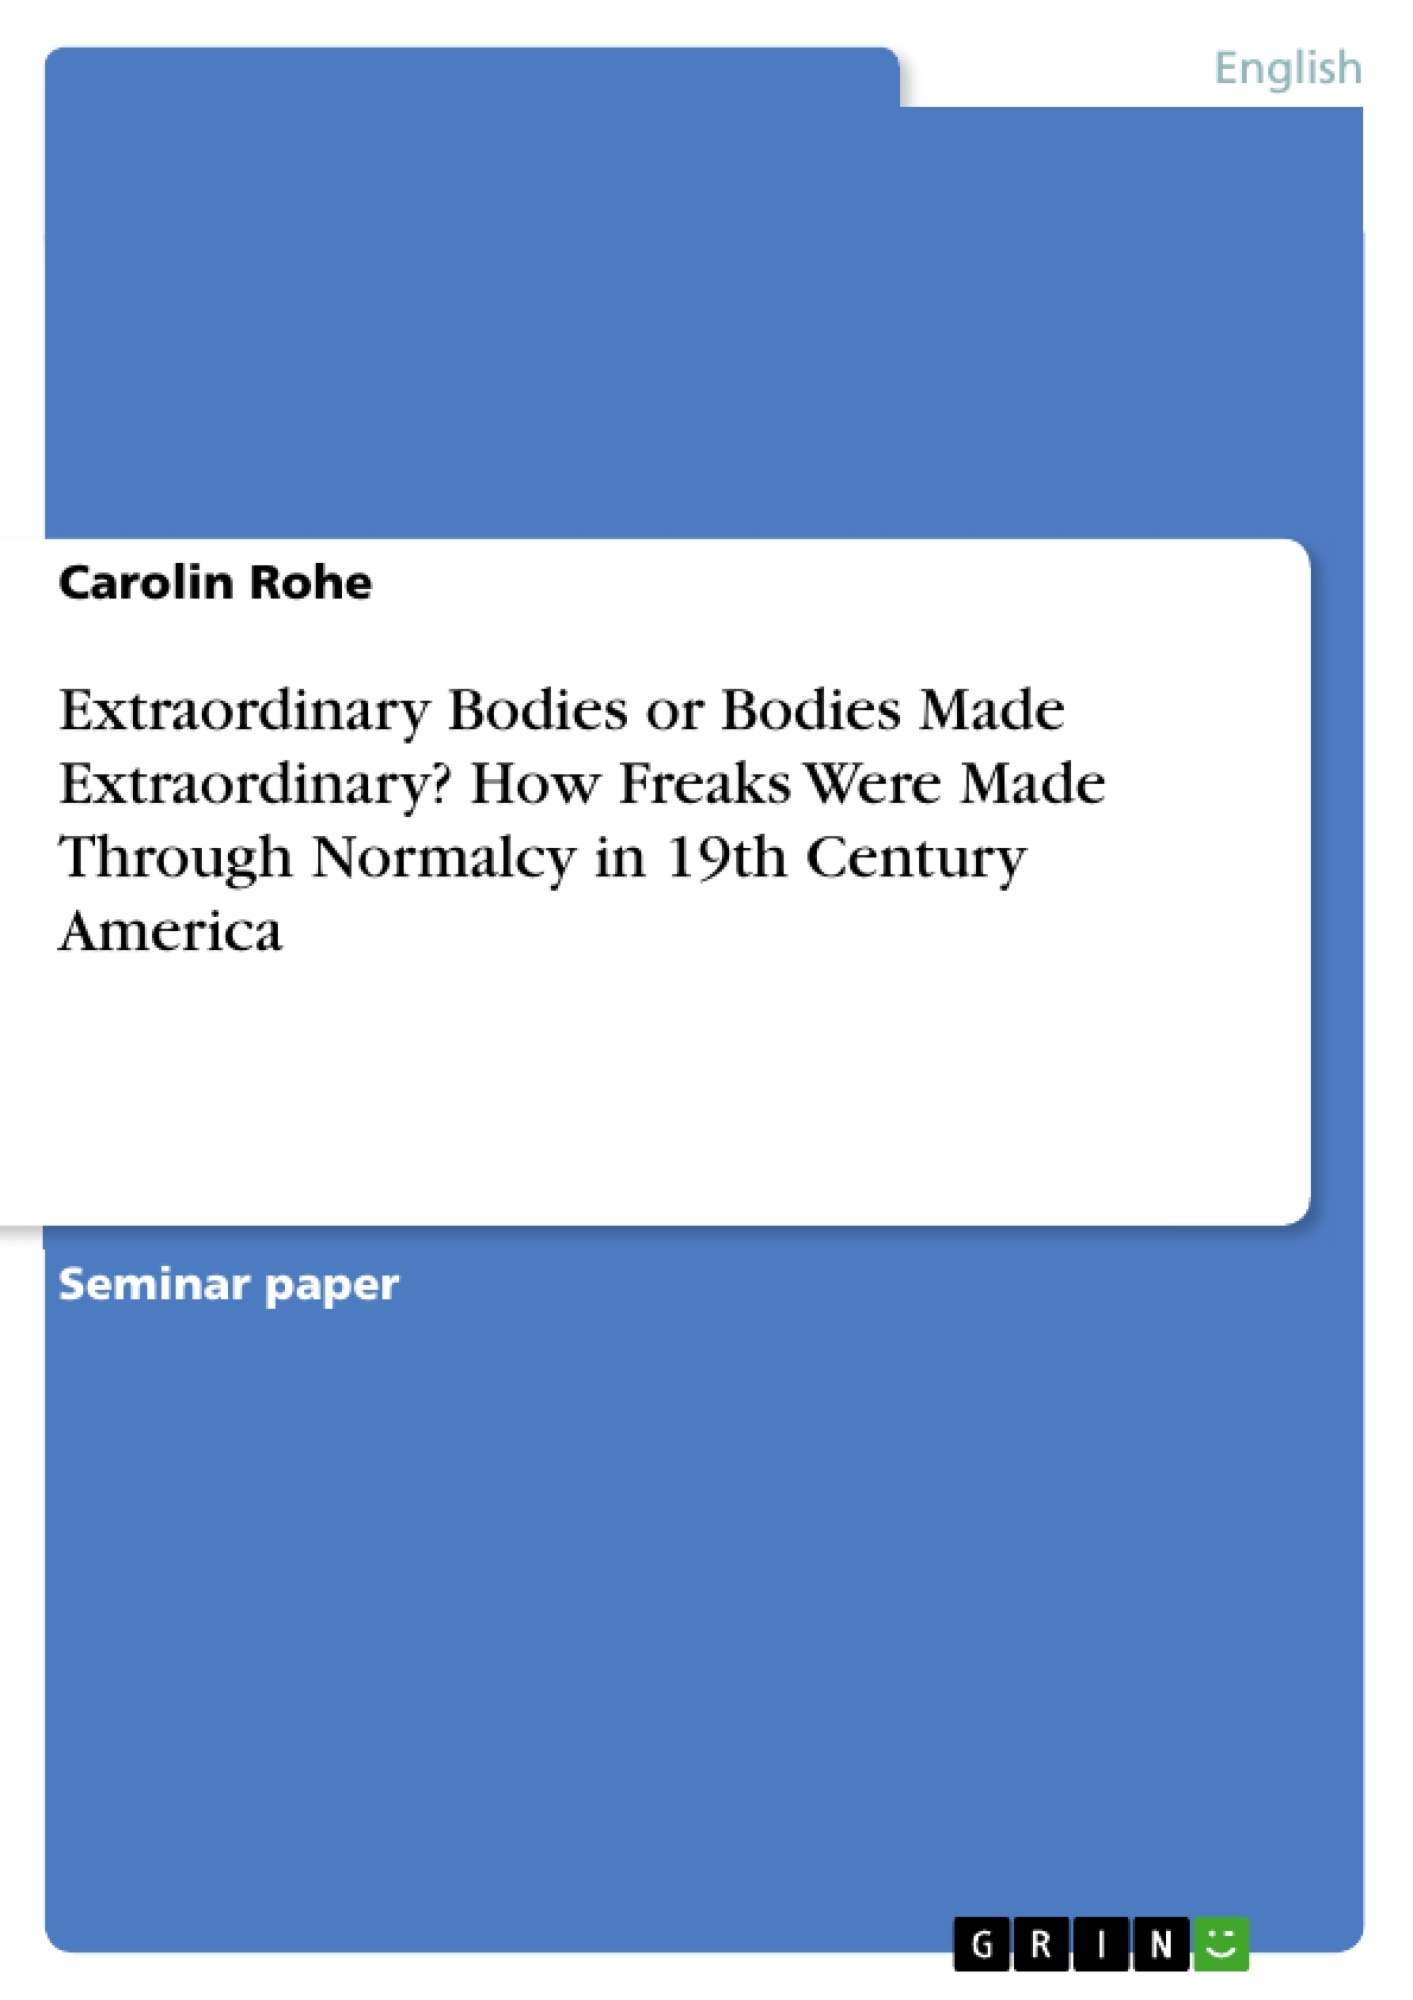 Title: Extraordinary Bodies or Bodies Made Extraordinary? How Freaks Were Made Through Normalcy in 19th Century America